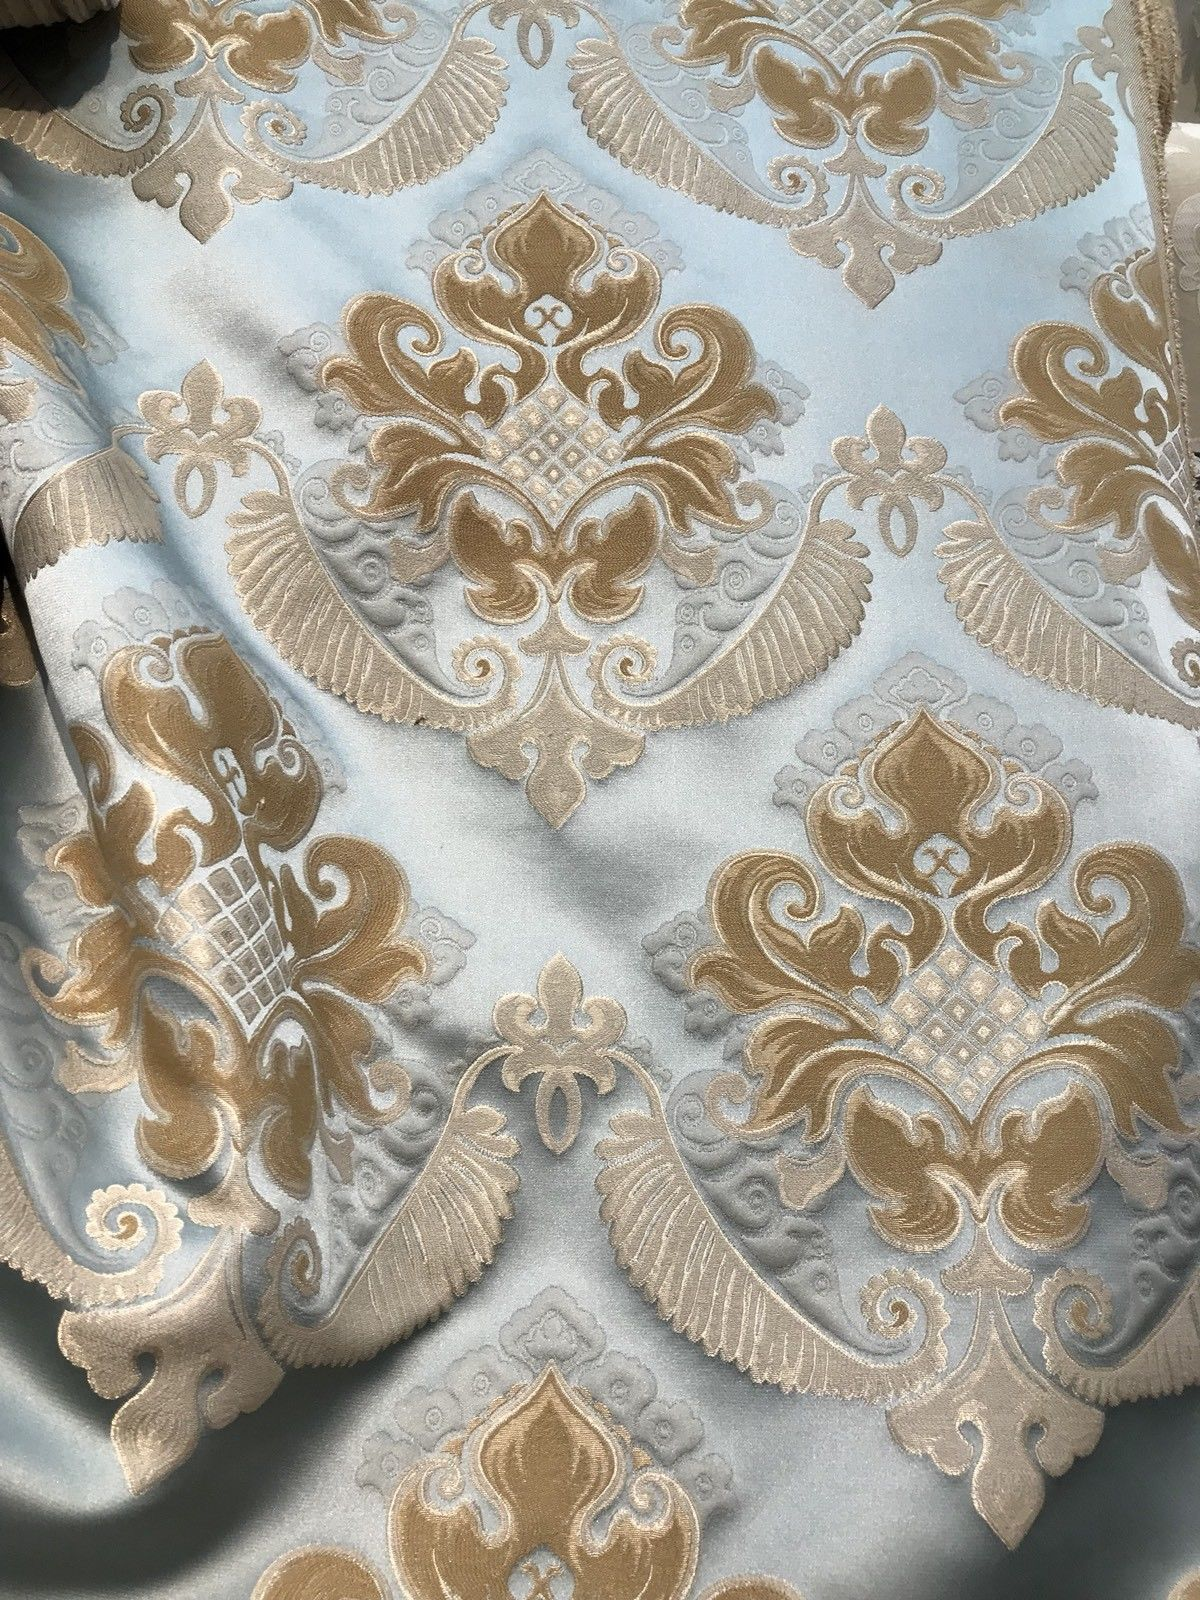 SWATCH Brocade Satin Fabric- Antique Blue & Honey - Damask- Upholstery - Fancy Styles Fabric Boutique